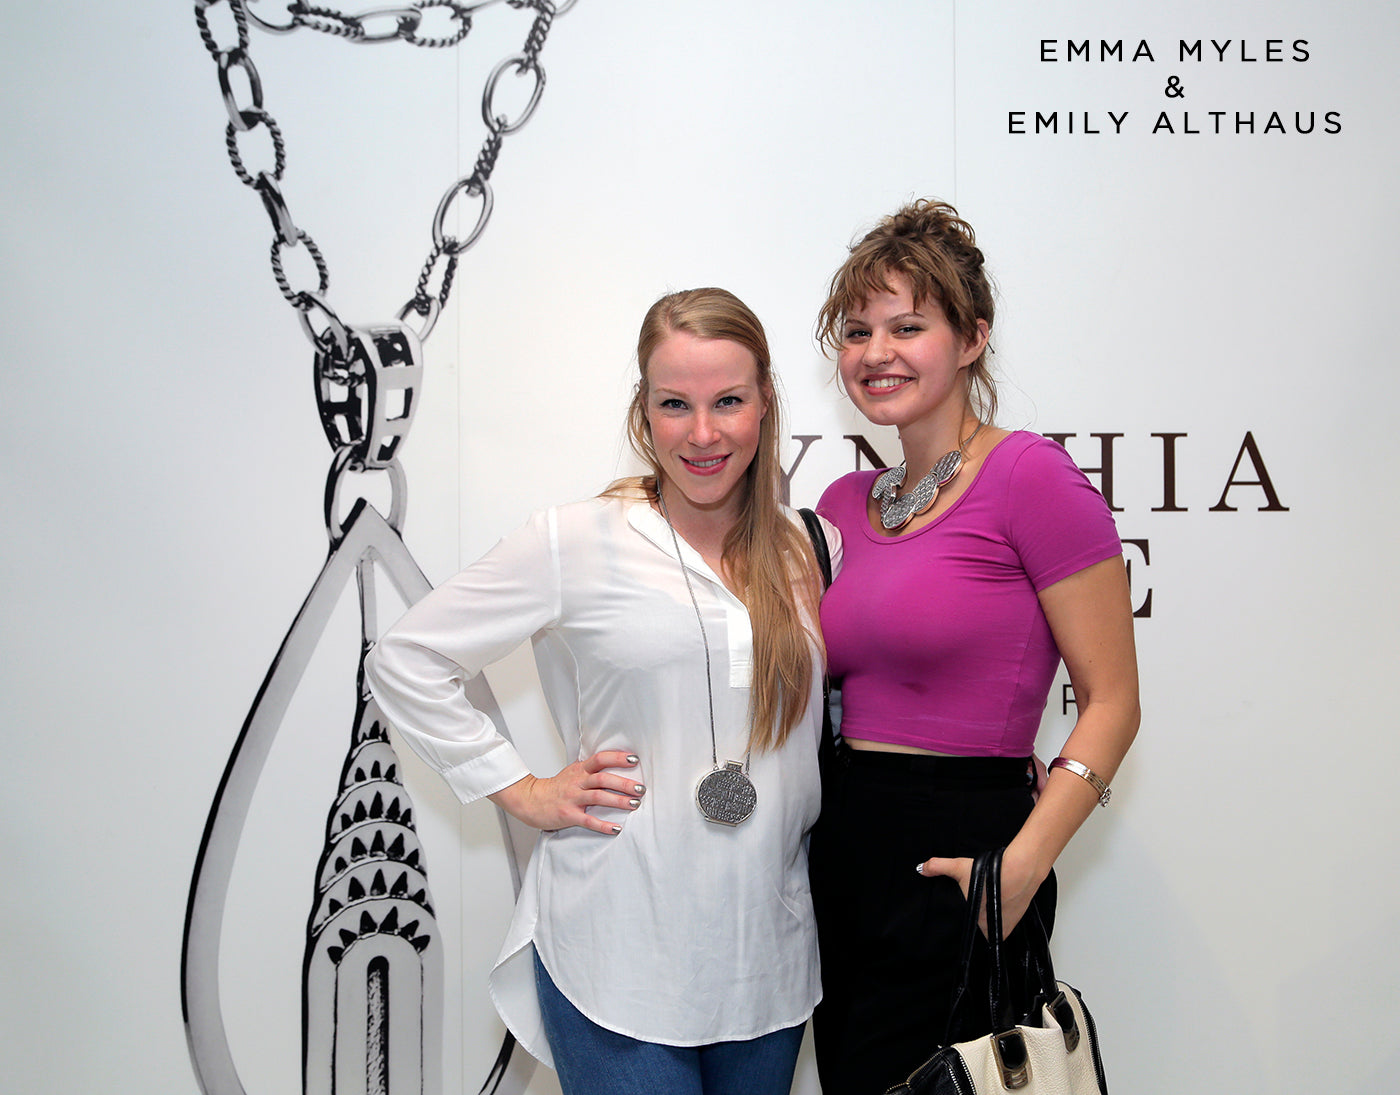 Emma Myles & Emily Althaus fashion style